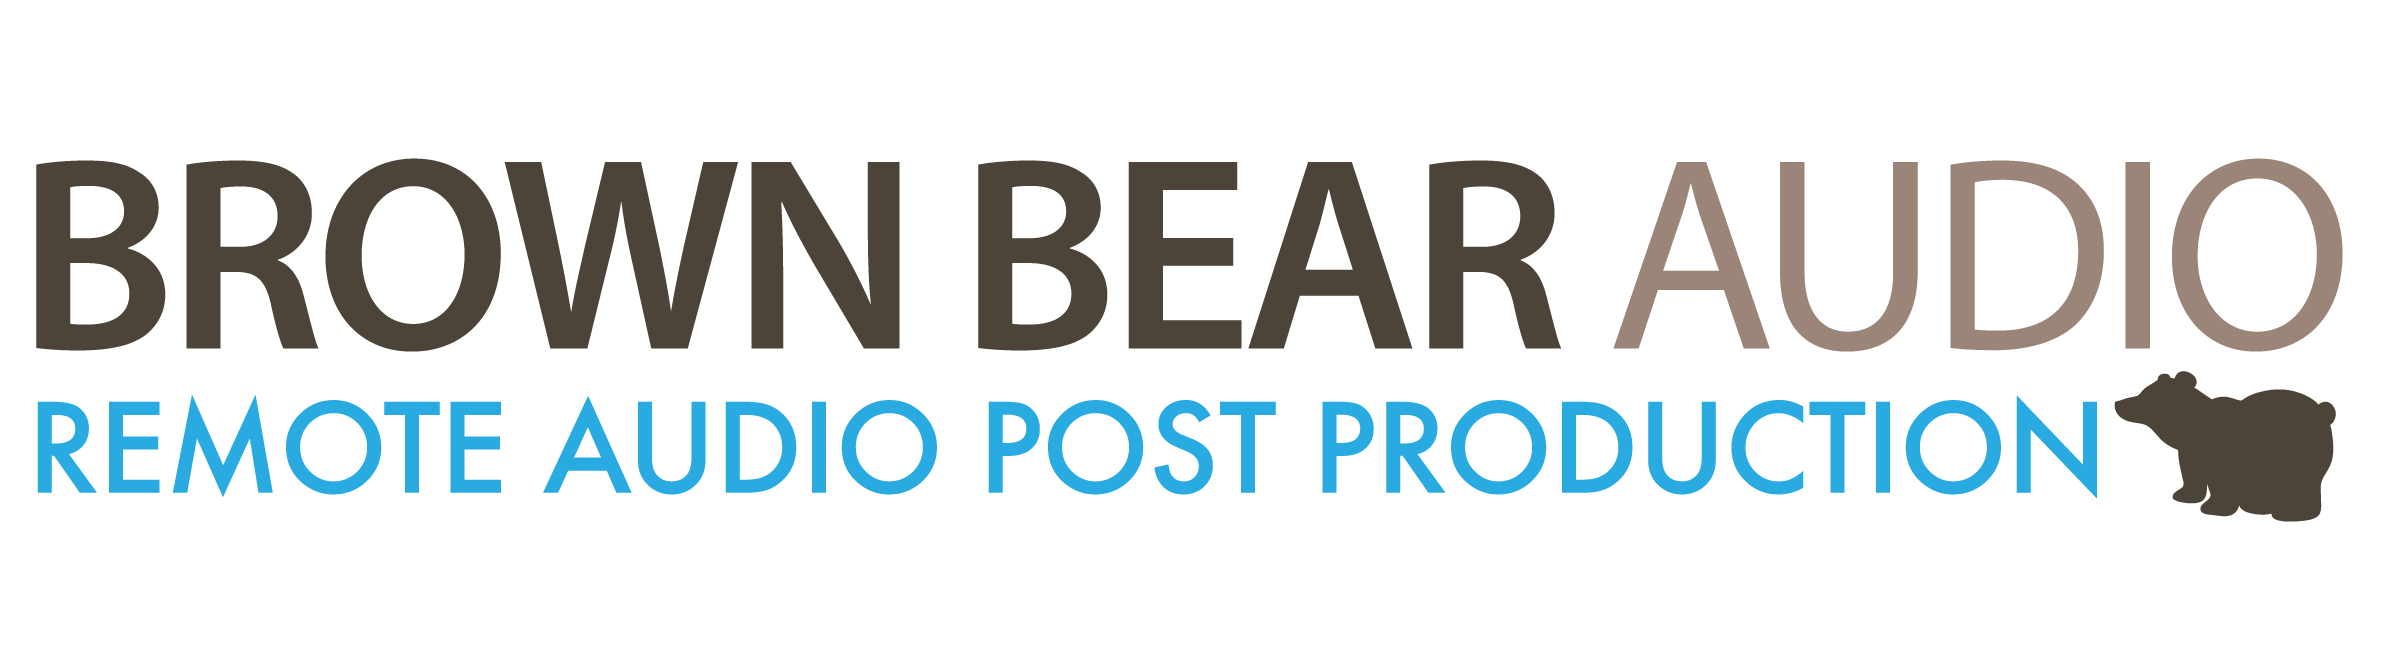 Brown Bear Audio